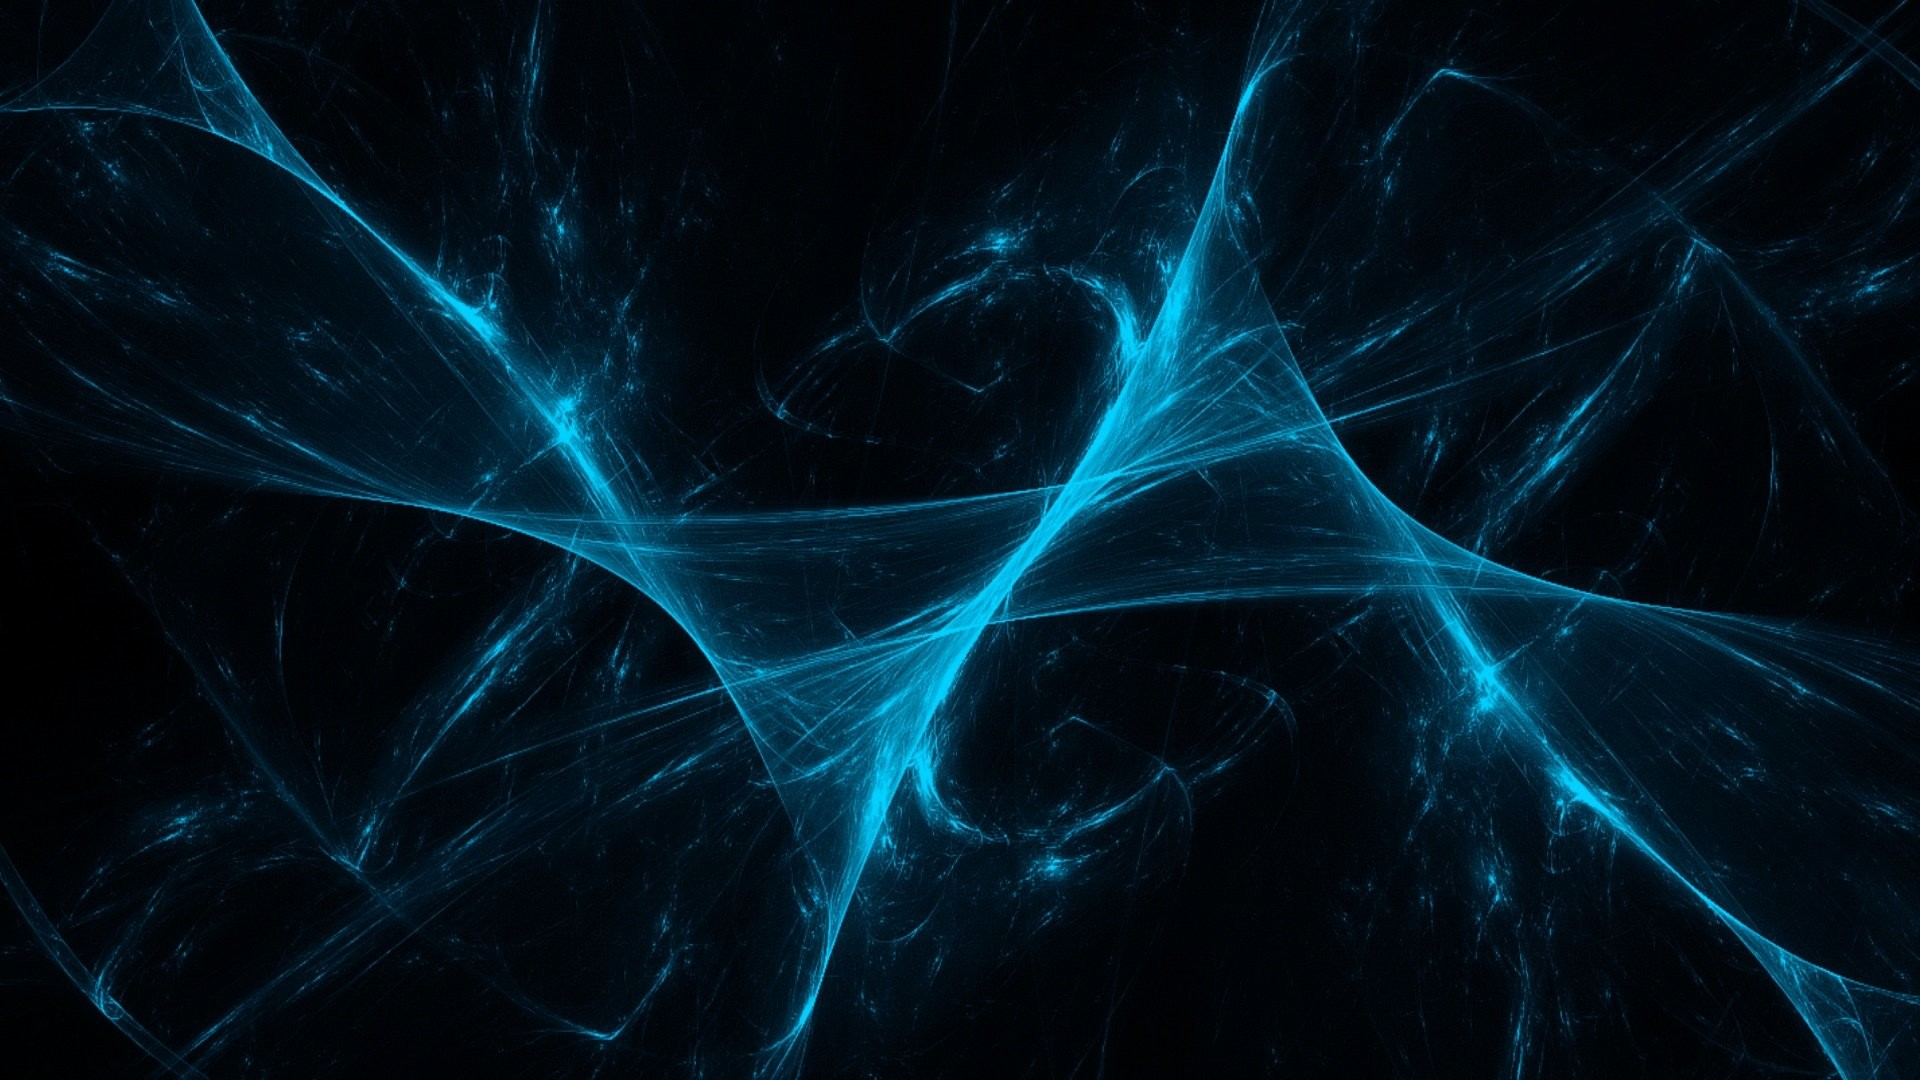 wallpapers-abstract-background-black-smoke-blue-backgrounds-image.